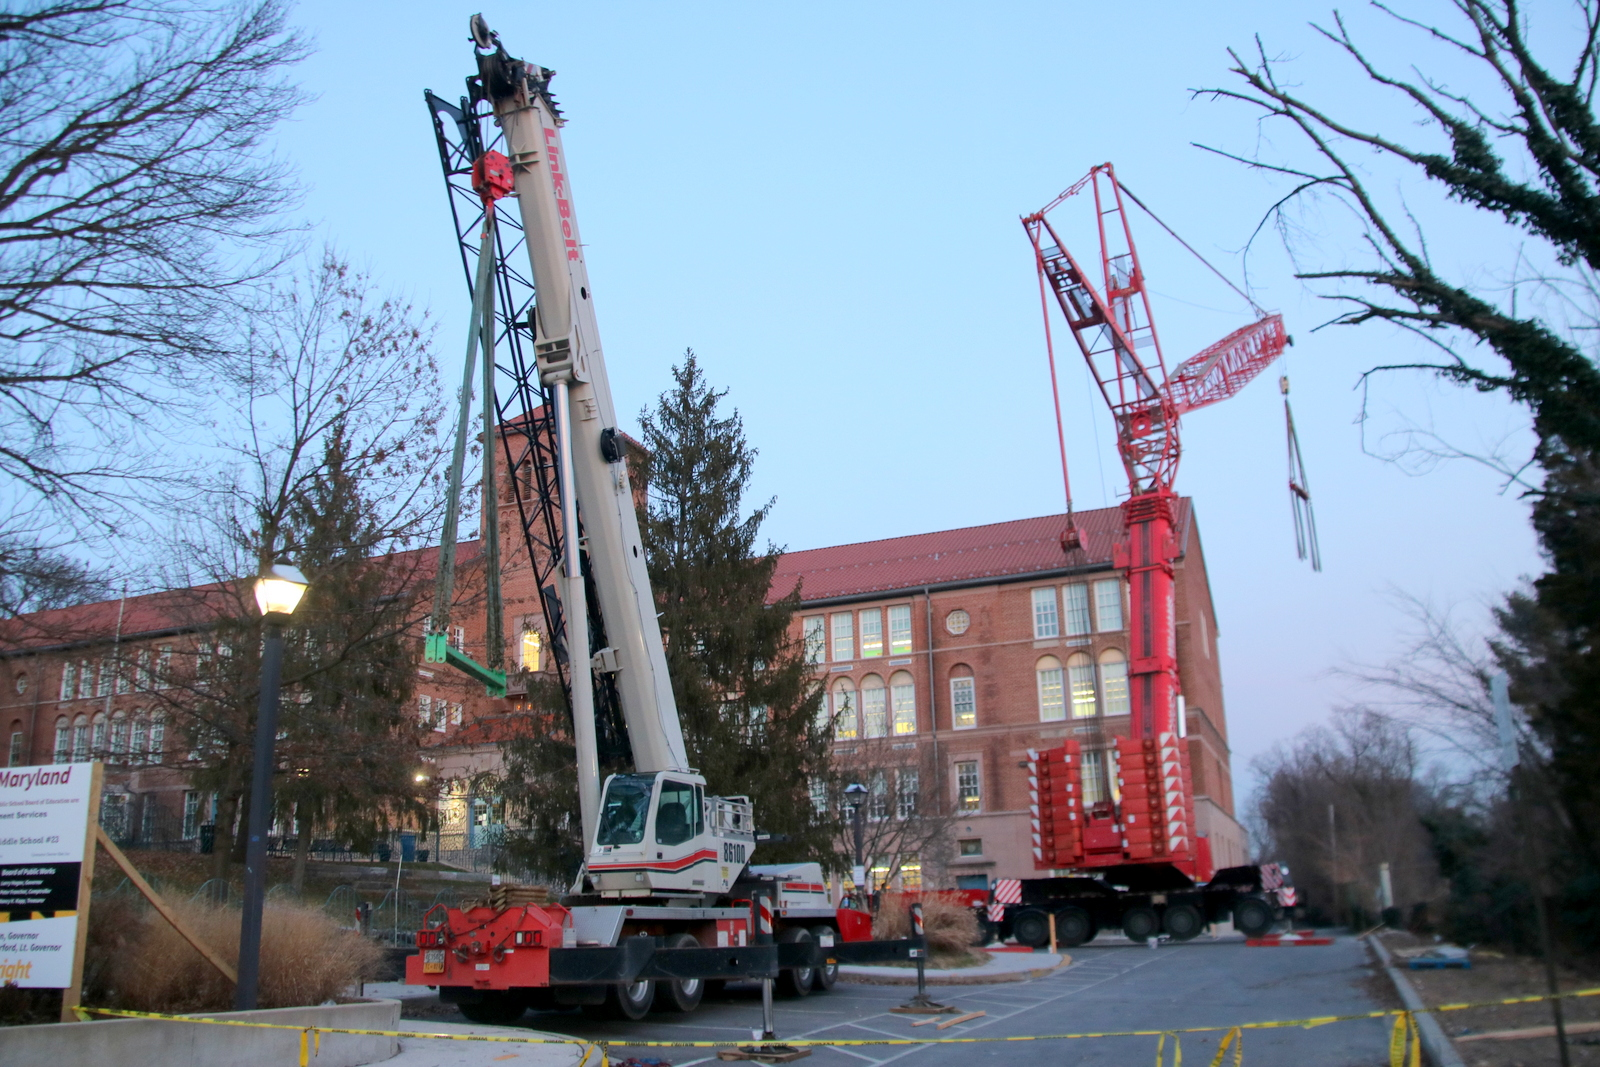 Crane used to place ventilation equipment on the Roland Park Elementary/Middle School roof last week. (Fern Shen)